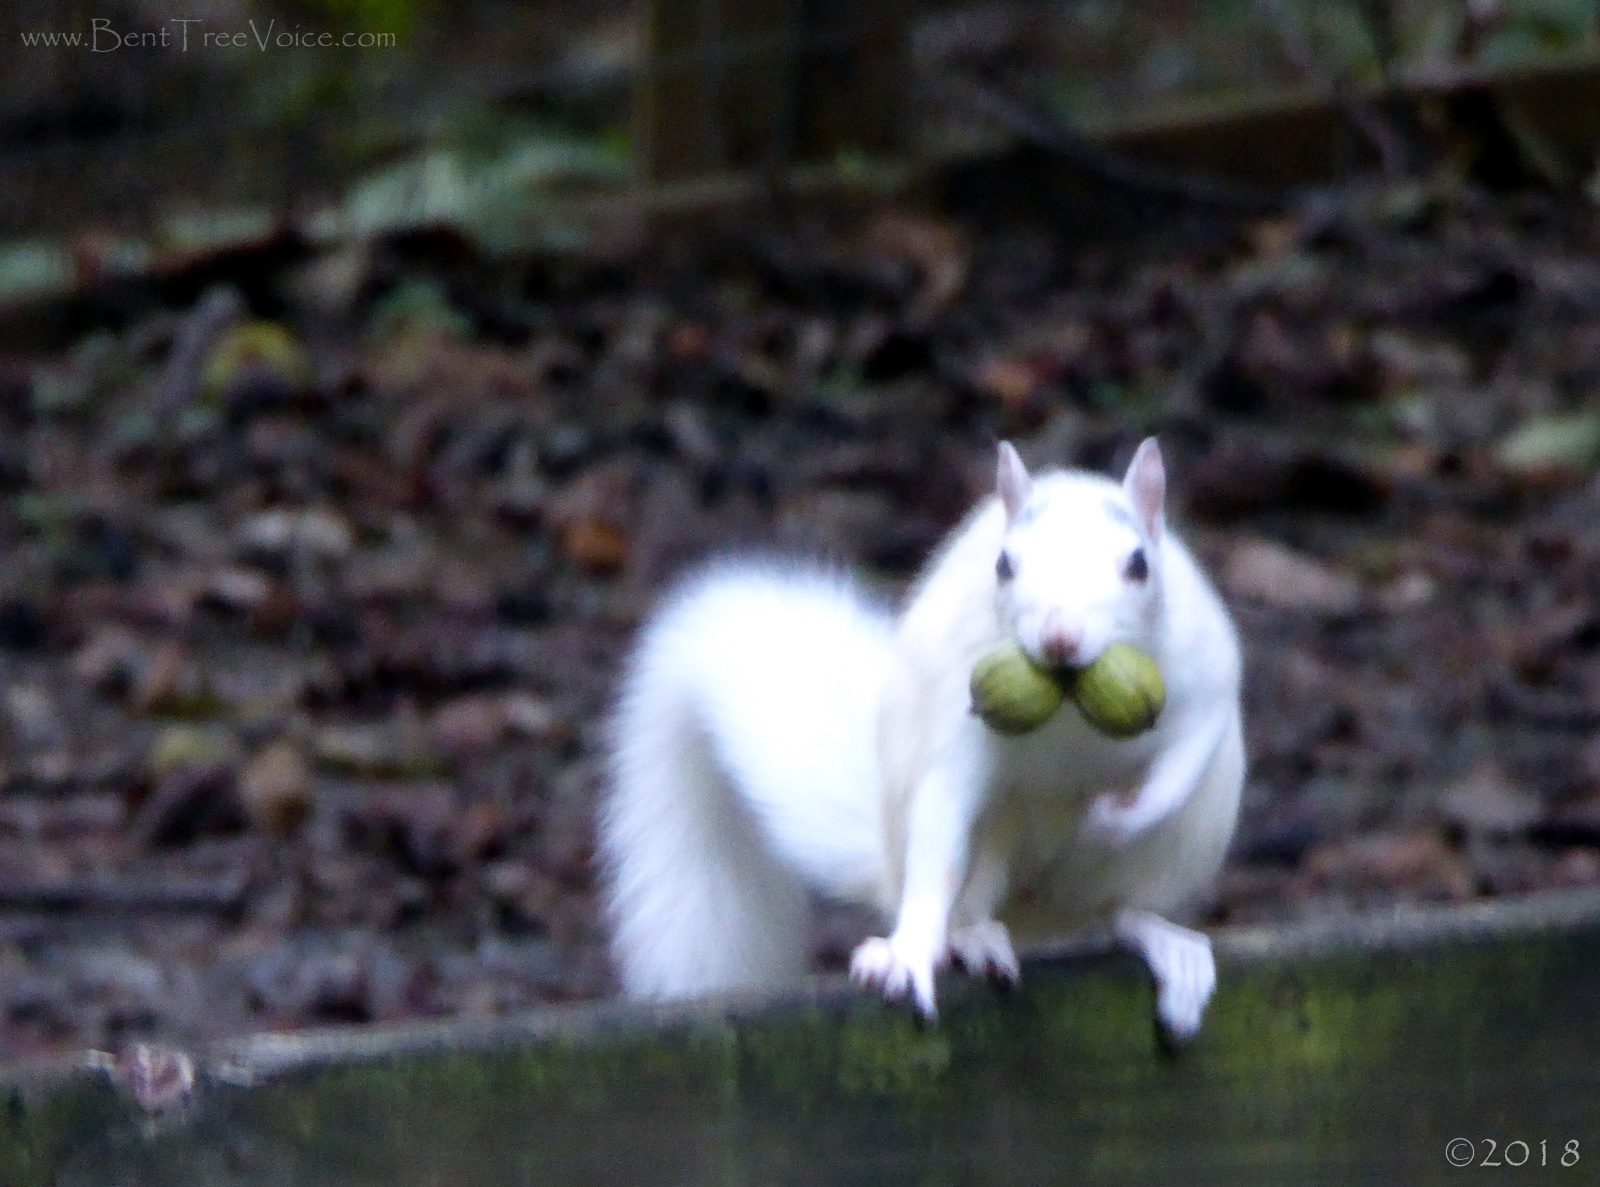 September 11, 2018 - White Squirrel in Bent Tree